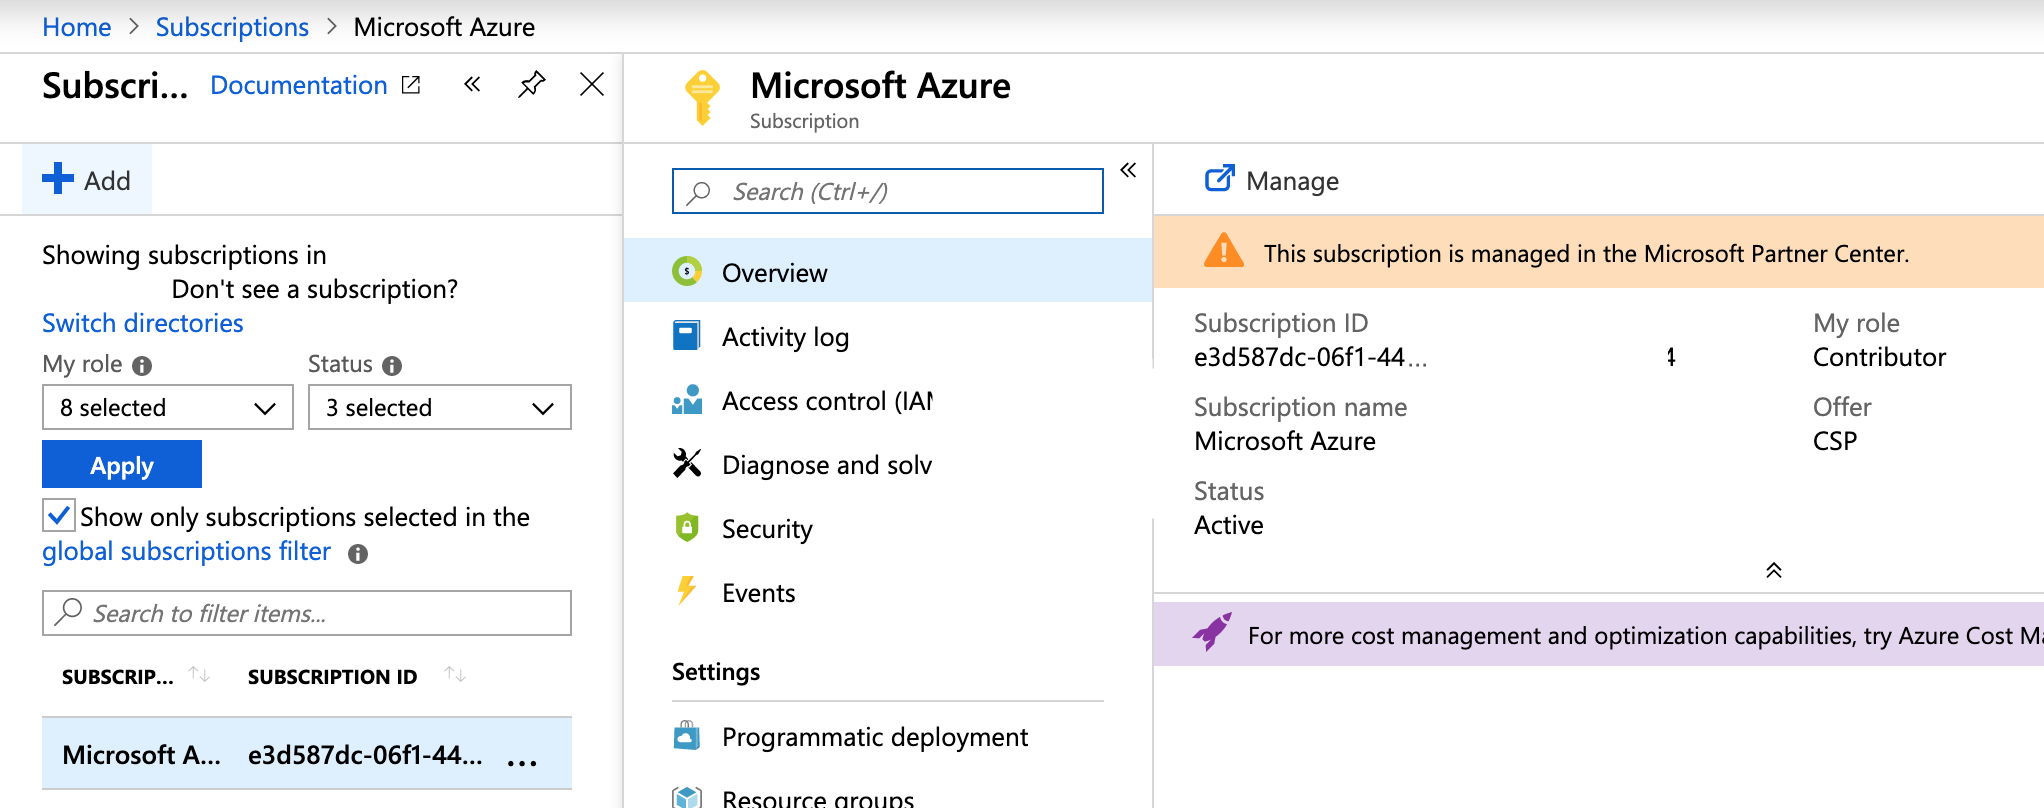 MS Azure Services legacy APIs